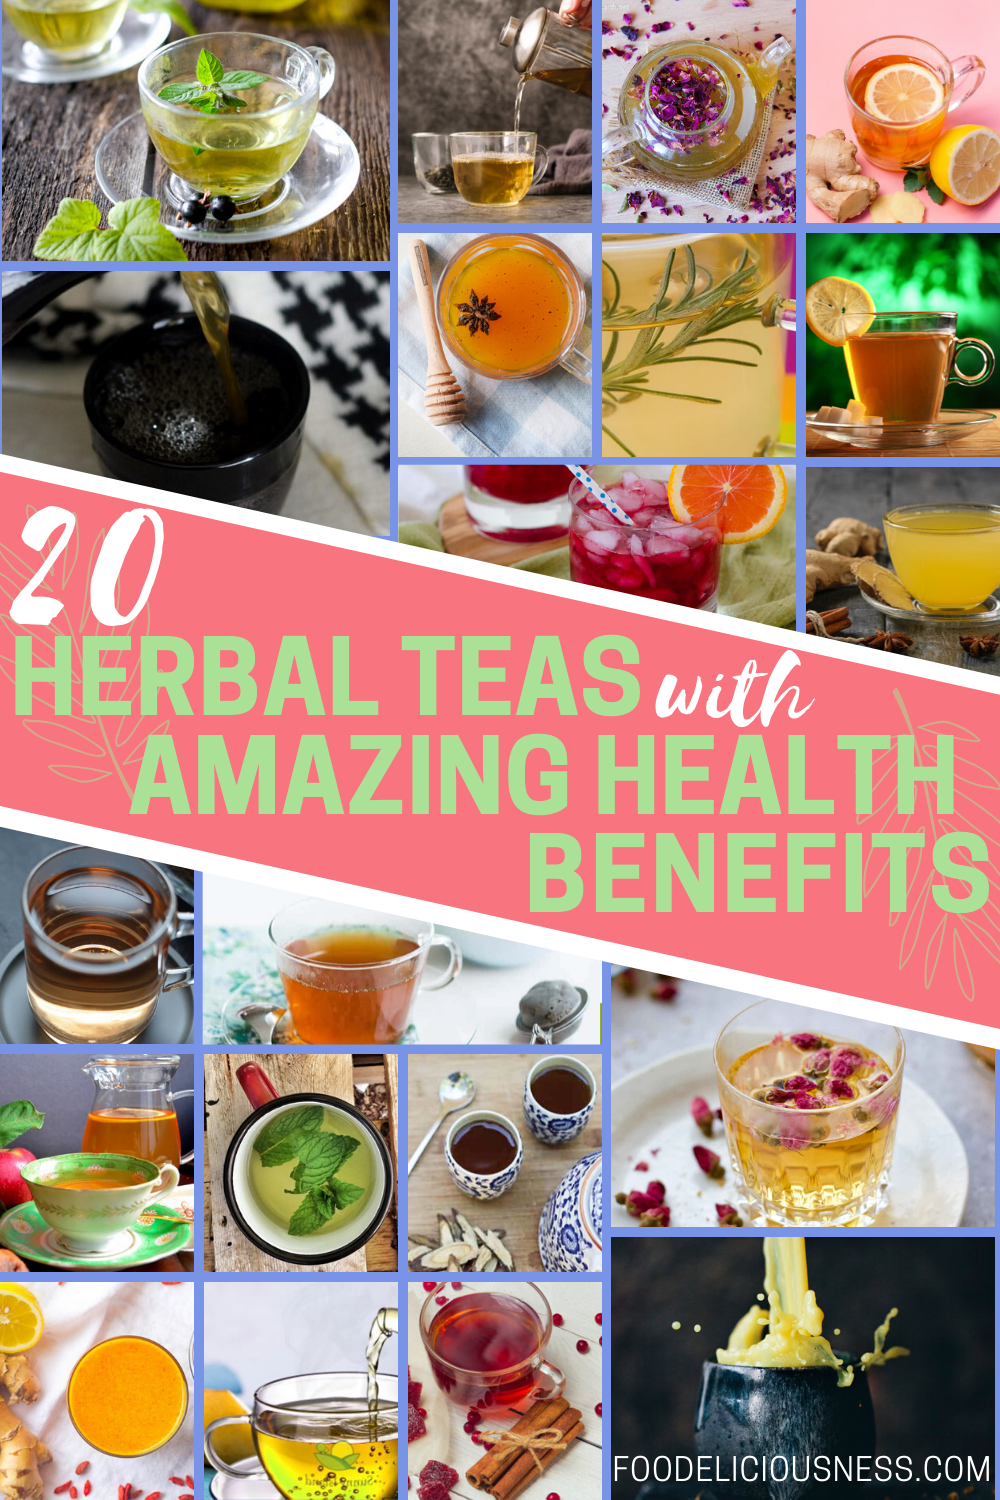 Herbal Teas with Amazing Health Benefits are recently being sought after by people not only because they are very relaxing, but also for health benefits of course. And because there are so many plants, hence, it is not surprising that there are so many herbal teas as well along with their amazing health benefits. With every different combination, herbal teas have their own special health benefits as well. #herbalteas #herbalteashealthbenefits @Foodeliciousness